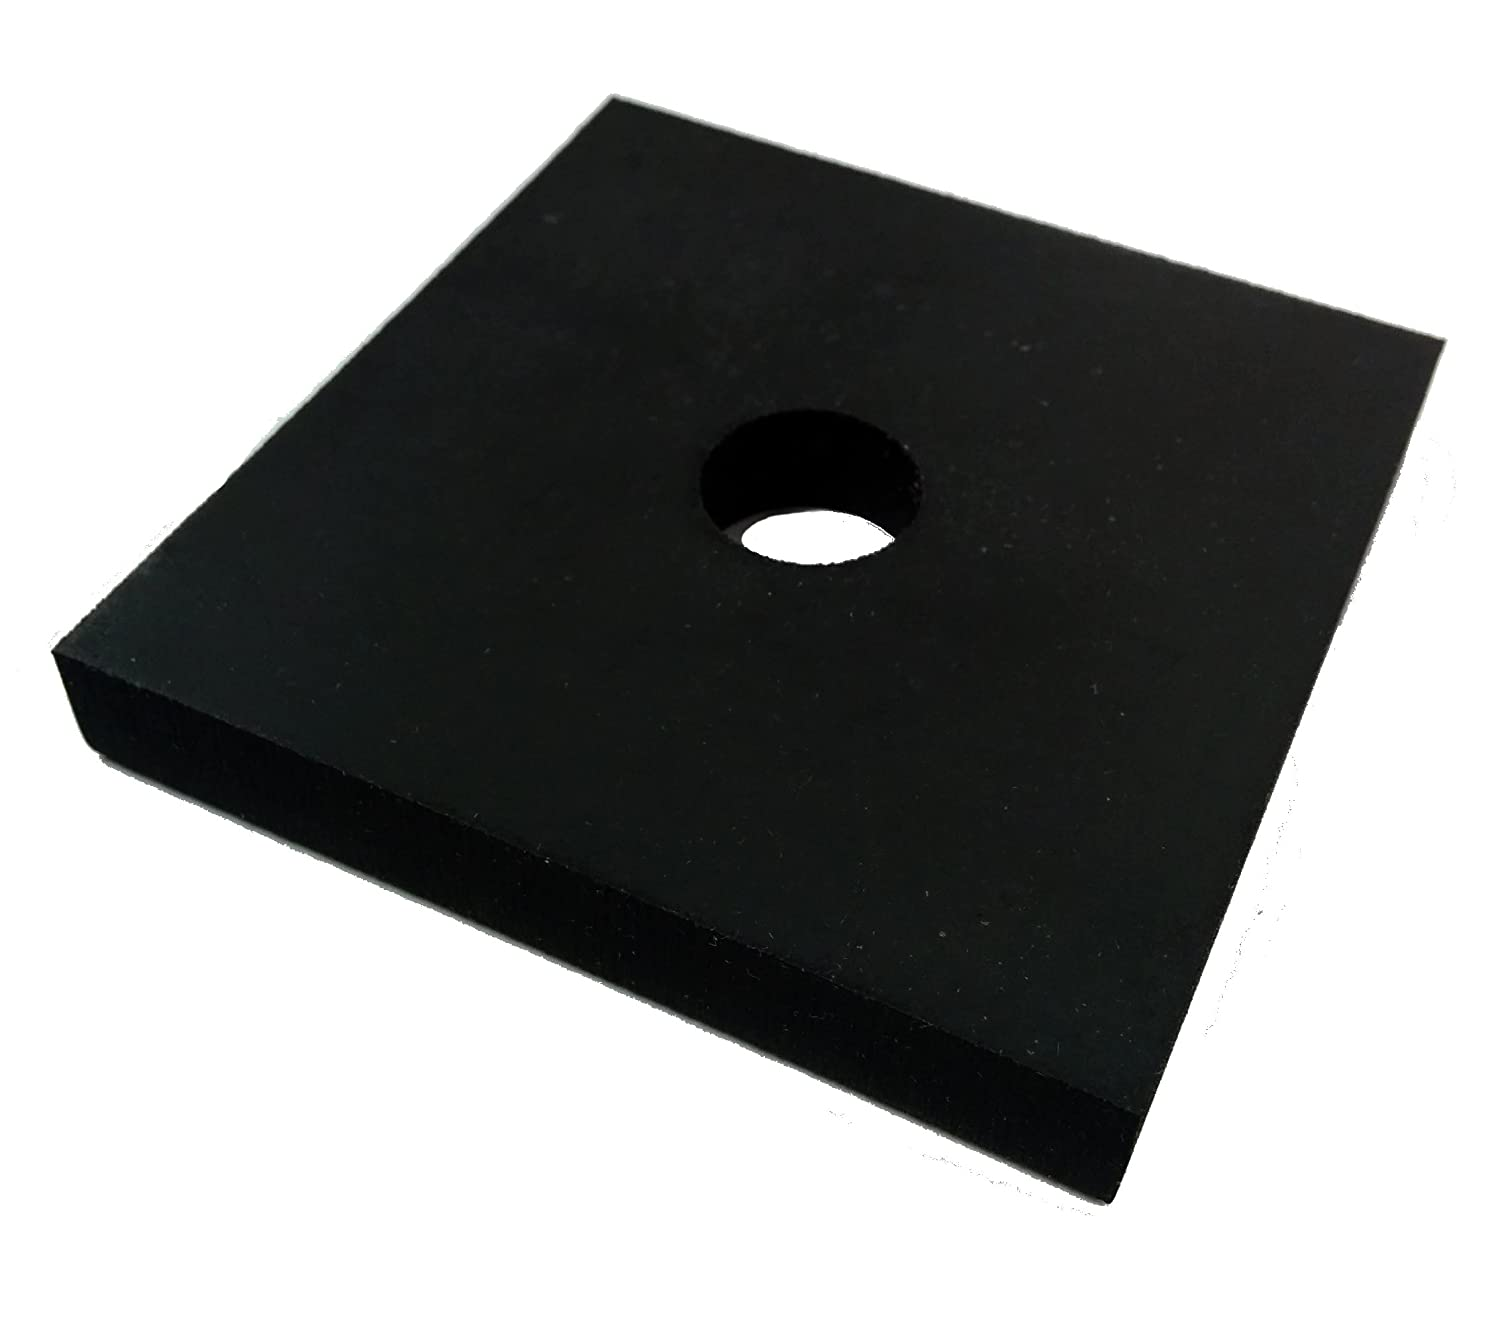 Herco Neoprene Rubber Vibration Isolation Support Pad 3.5